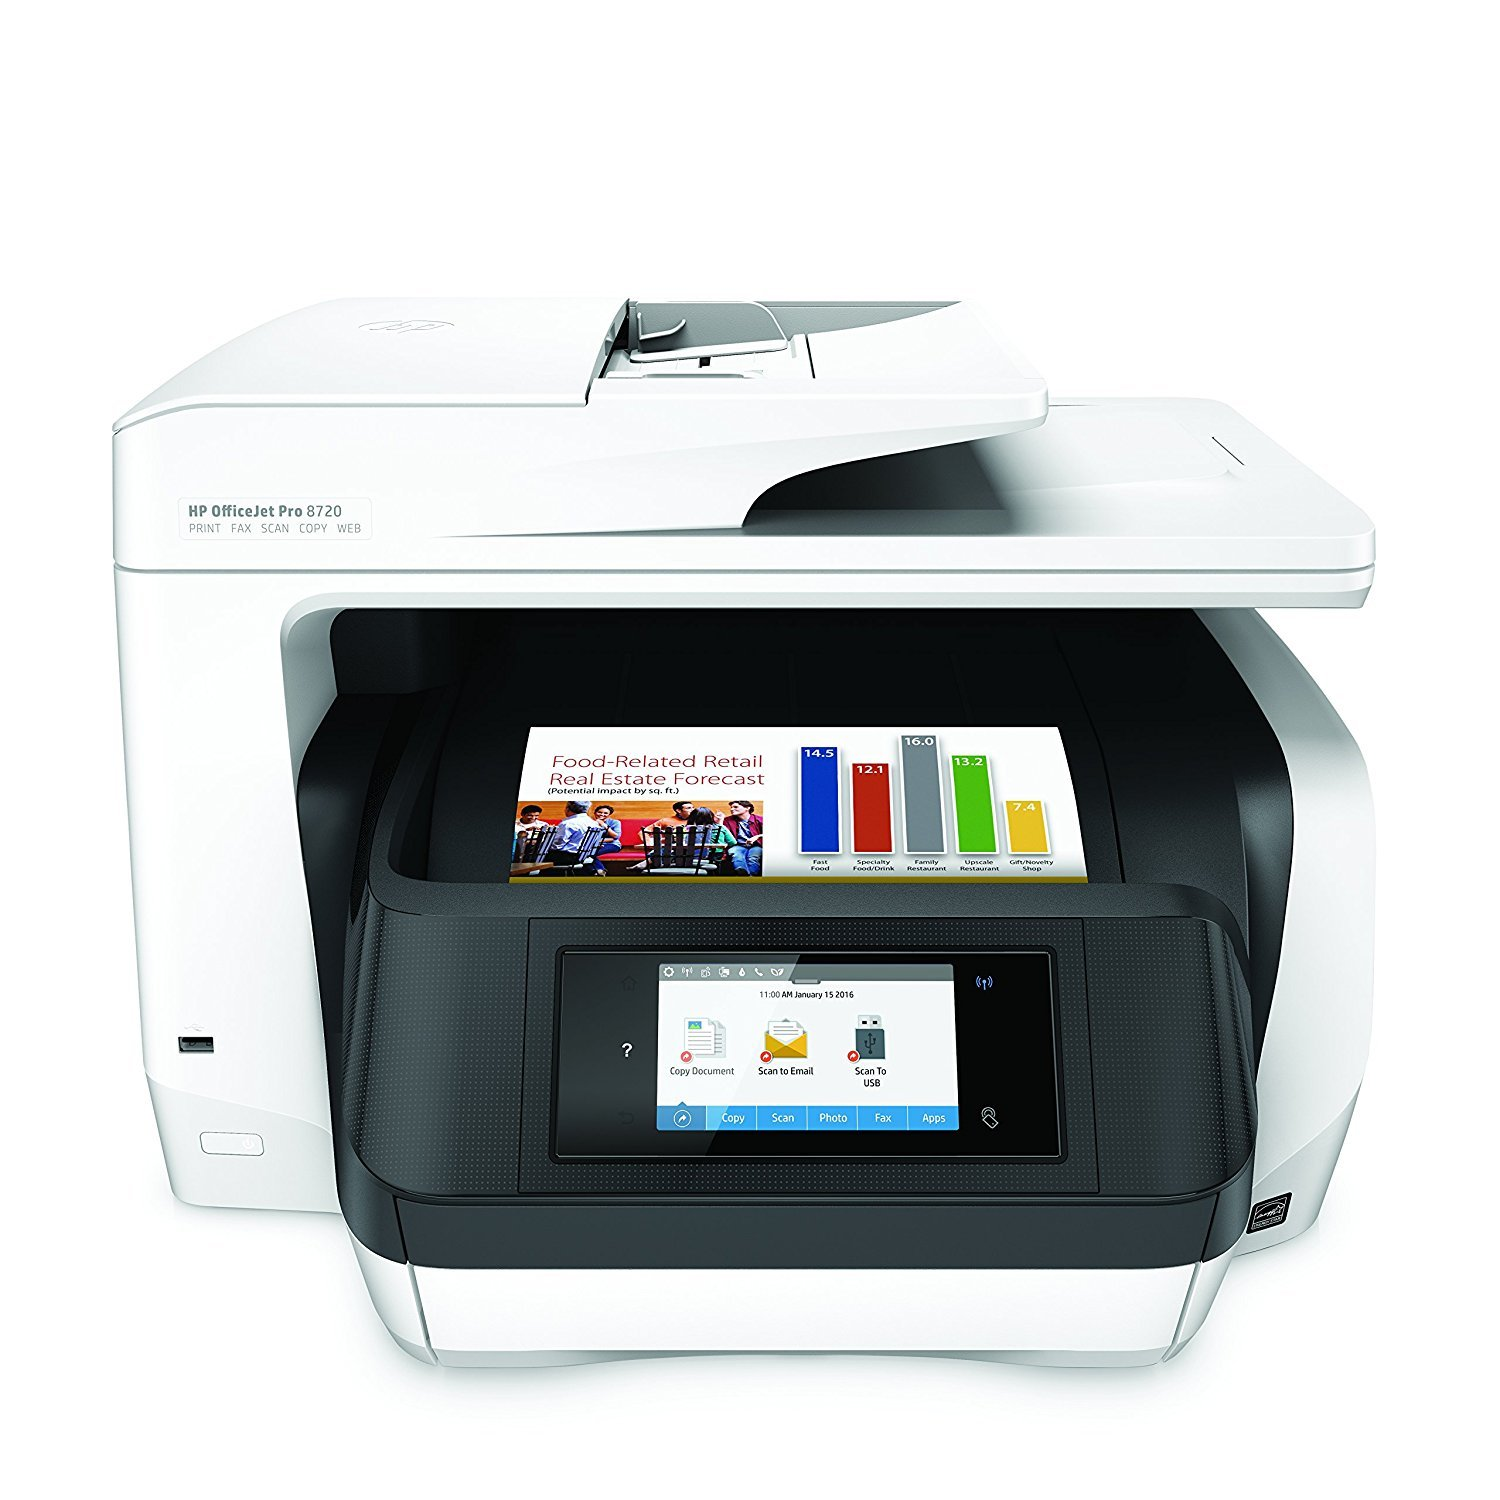 HP M9L74A OfficeJet Pro 8720 All-in-One Printer, White (Renewed) by HP